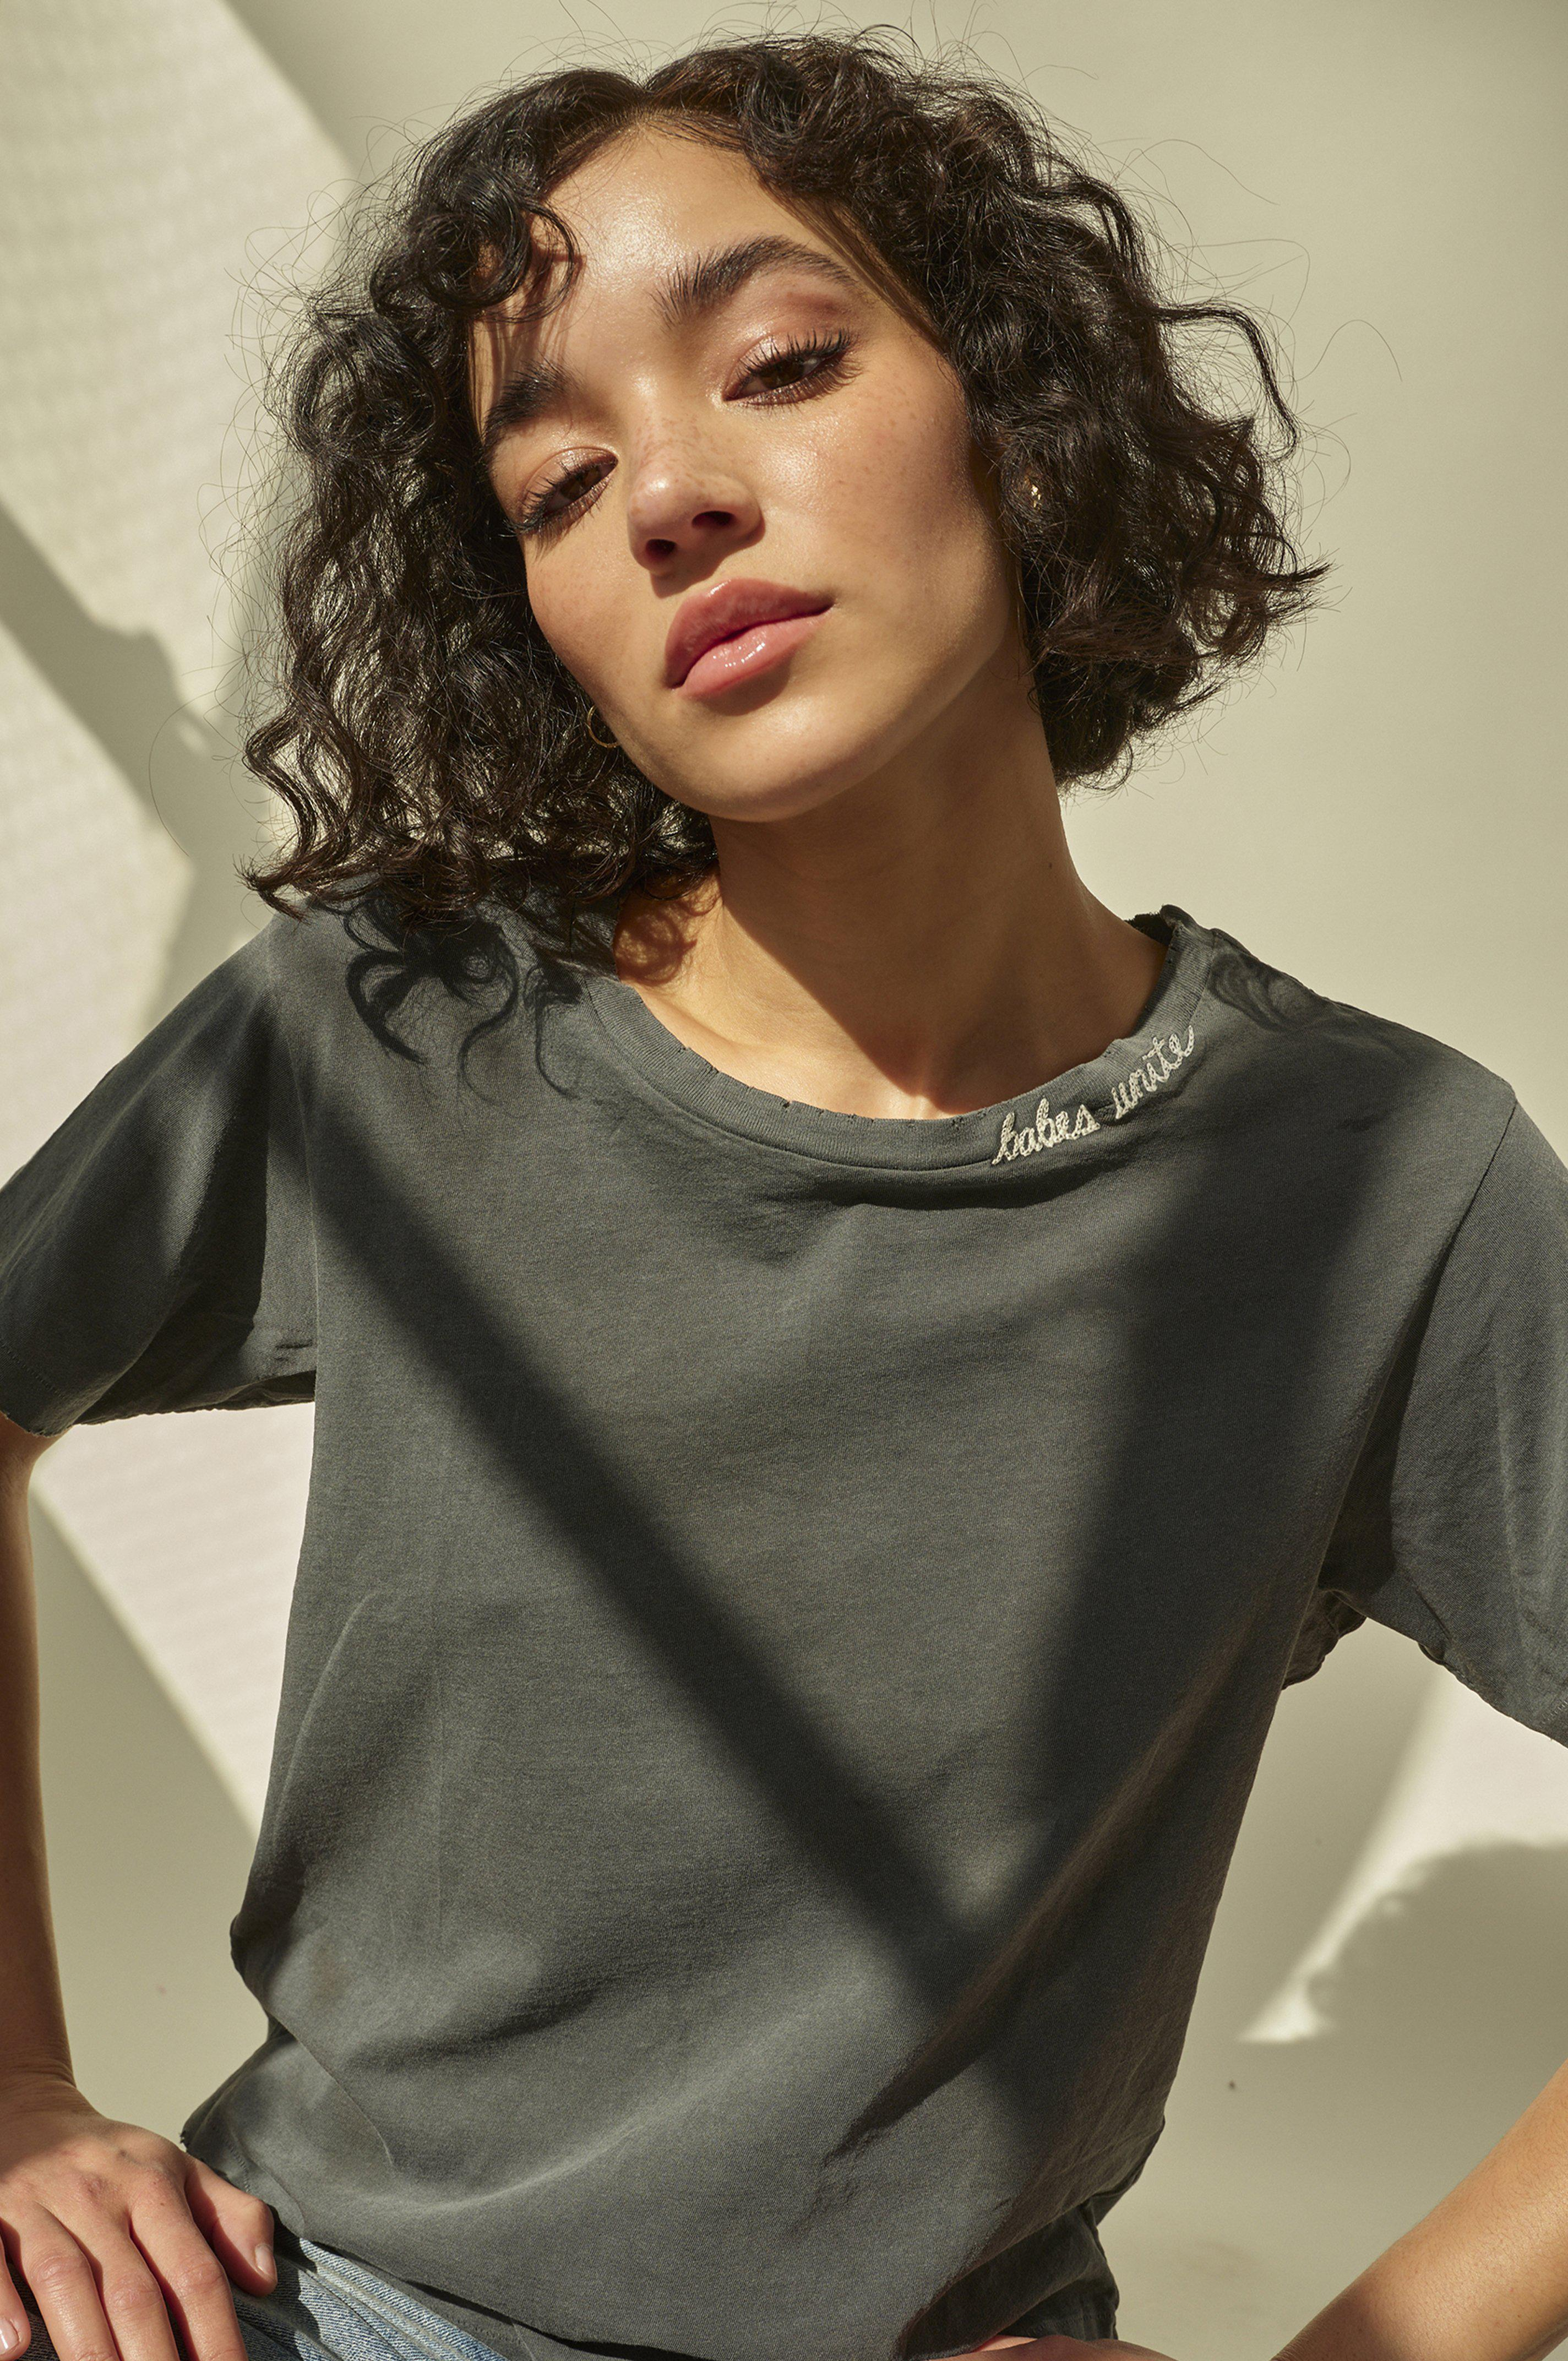 CLASSIC TEE W/ BABES UNITE EMBROIDERY FADED BLACK